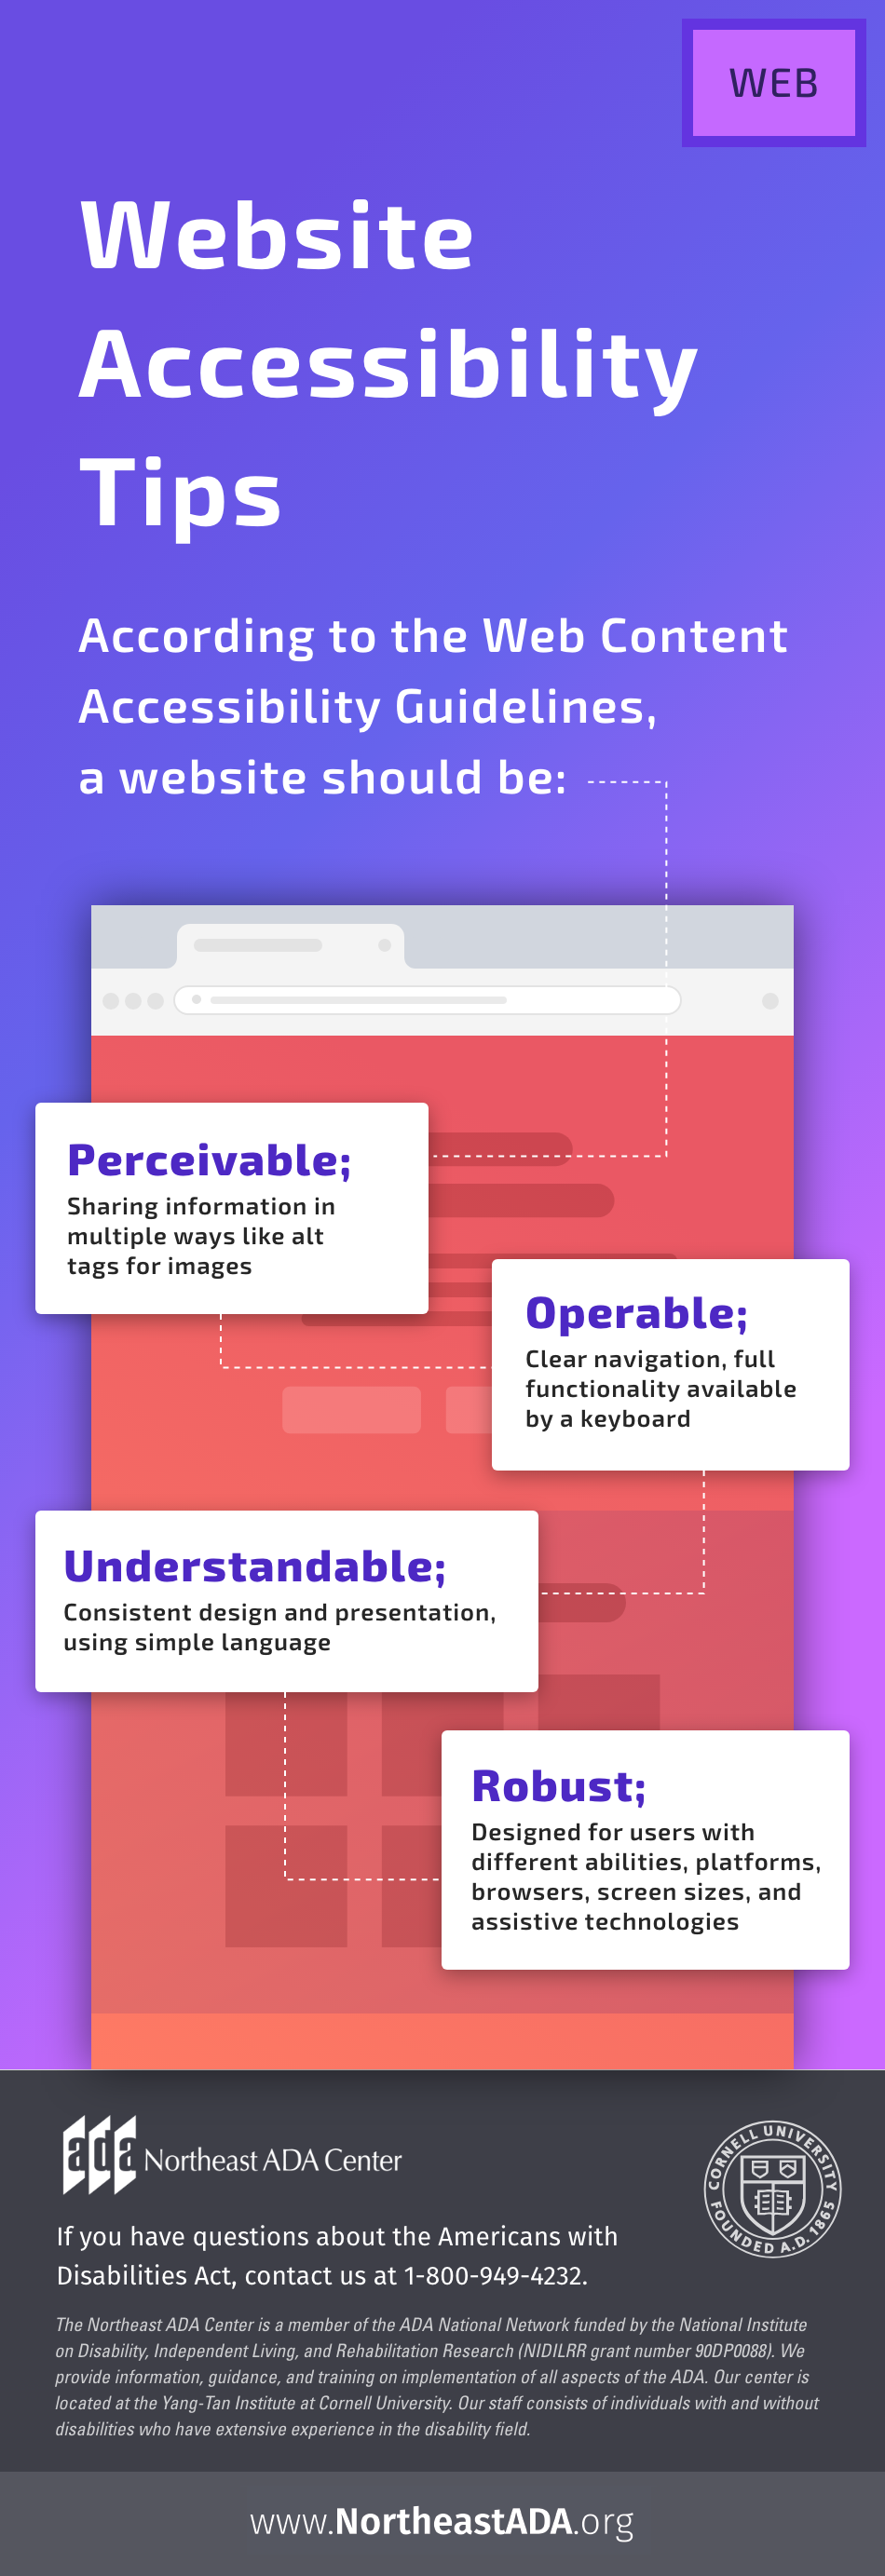 Infographic titled 'Website Accessibility Tips'  According to the Web Content Accessibility Guidelines, a website should be:  Perceivable; sharing information in multiple ways like alt tags for images.  Operable; clear navigation, full functionality available by a keyboard.  Understandable; consistent design and presentation, using simple language.  Robust; designed for users with different abilities, platforms, browsers, screen sizes, and assistive technologies.  If you have questions about the Americans with Disabilities Act, contact us at 1-800-949-4232